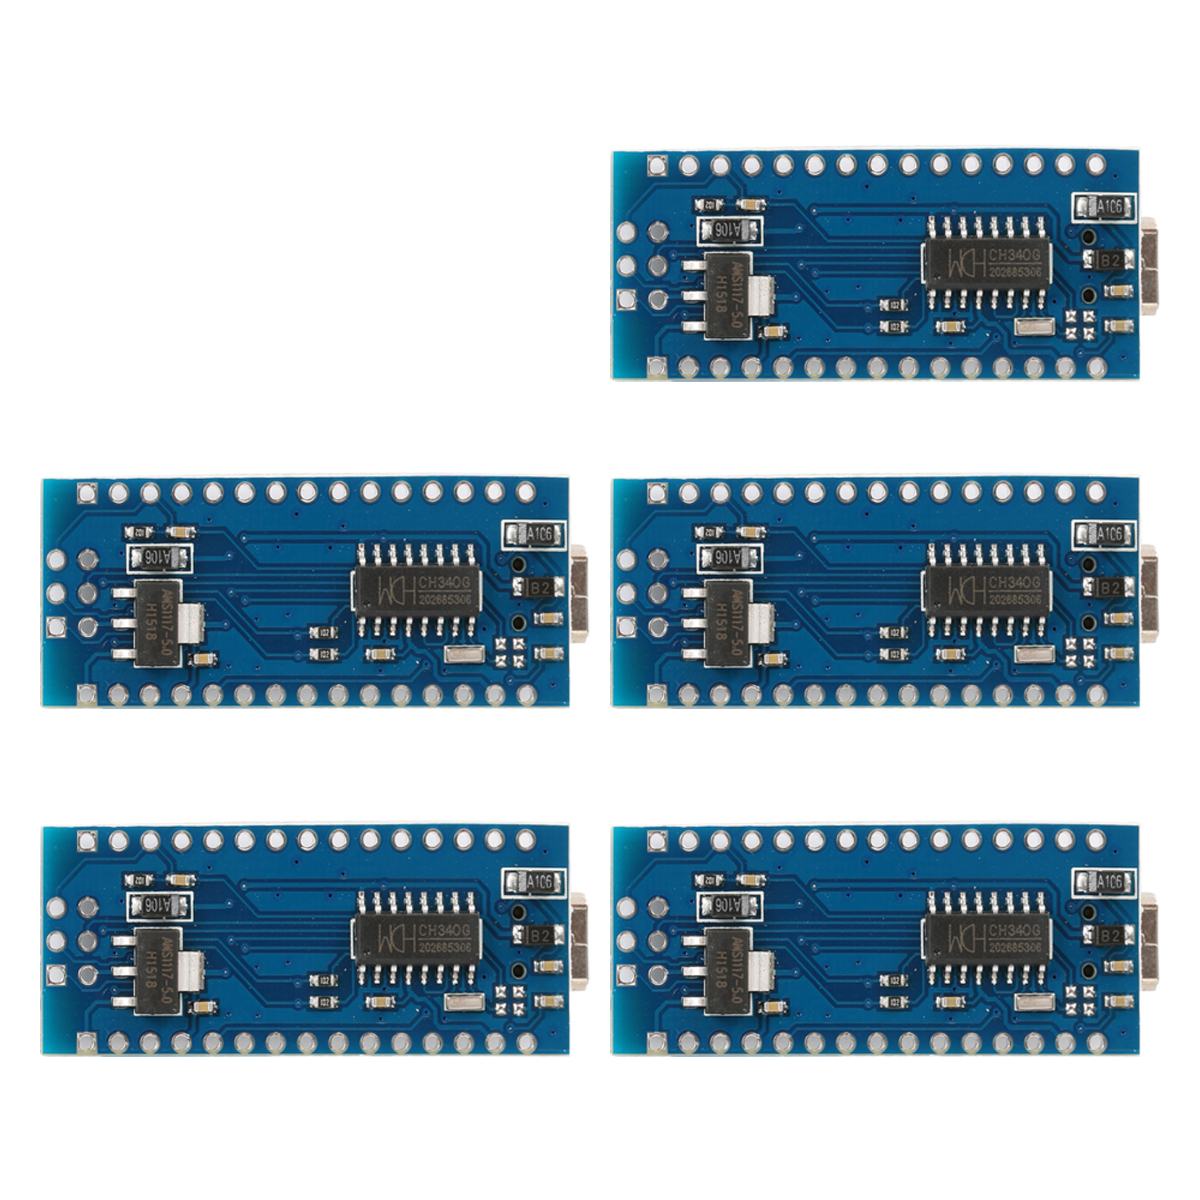 USB Nano V3.0 ATmega328P 5V 16M Micro Controller Board F Arduino TE359-SZ Set of 5 (Blue) product preview, discount at cheapest price